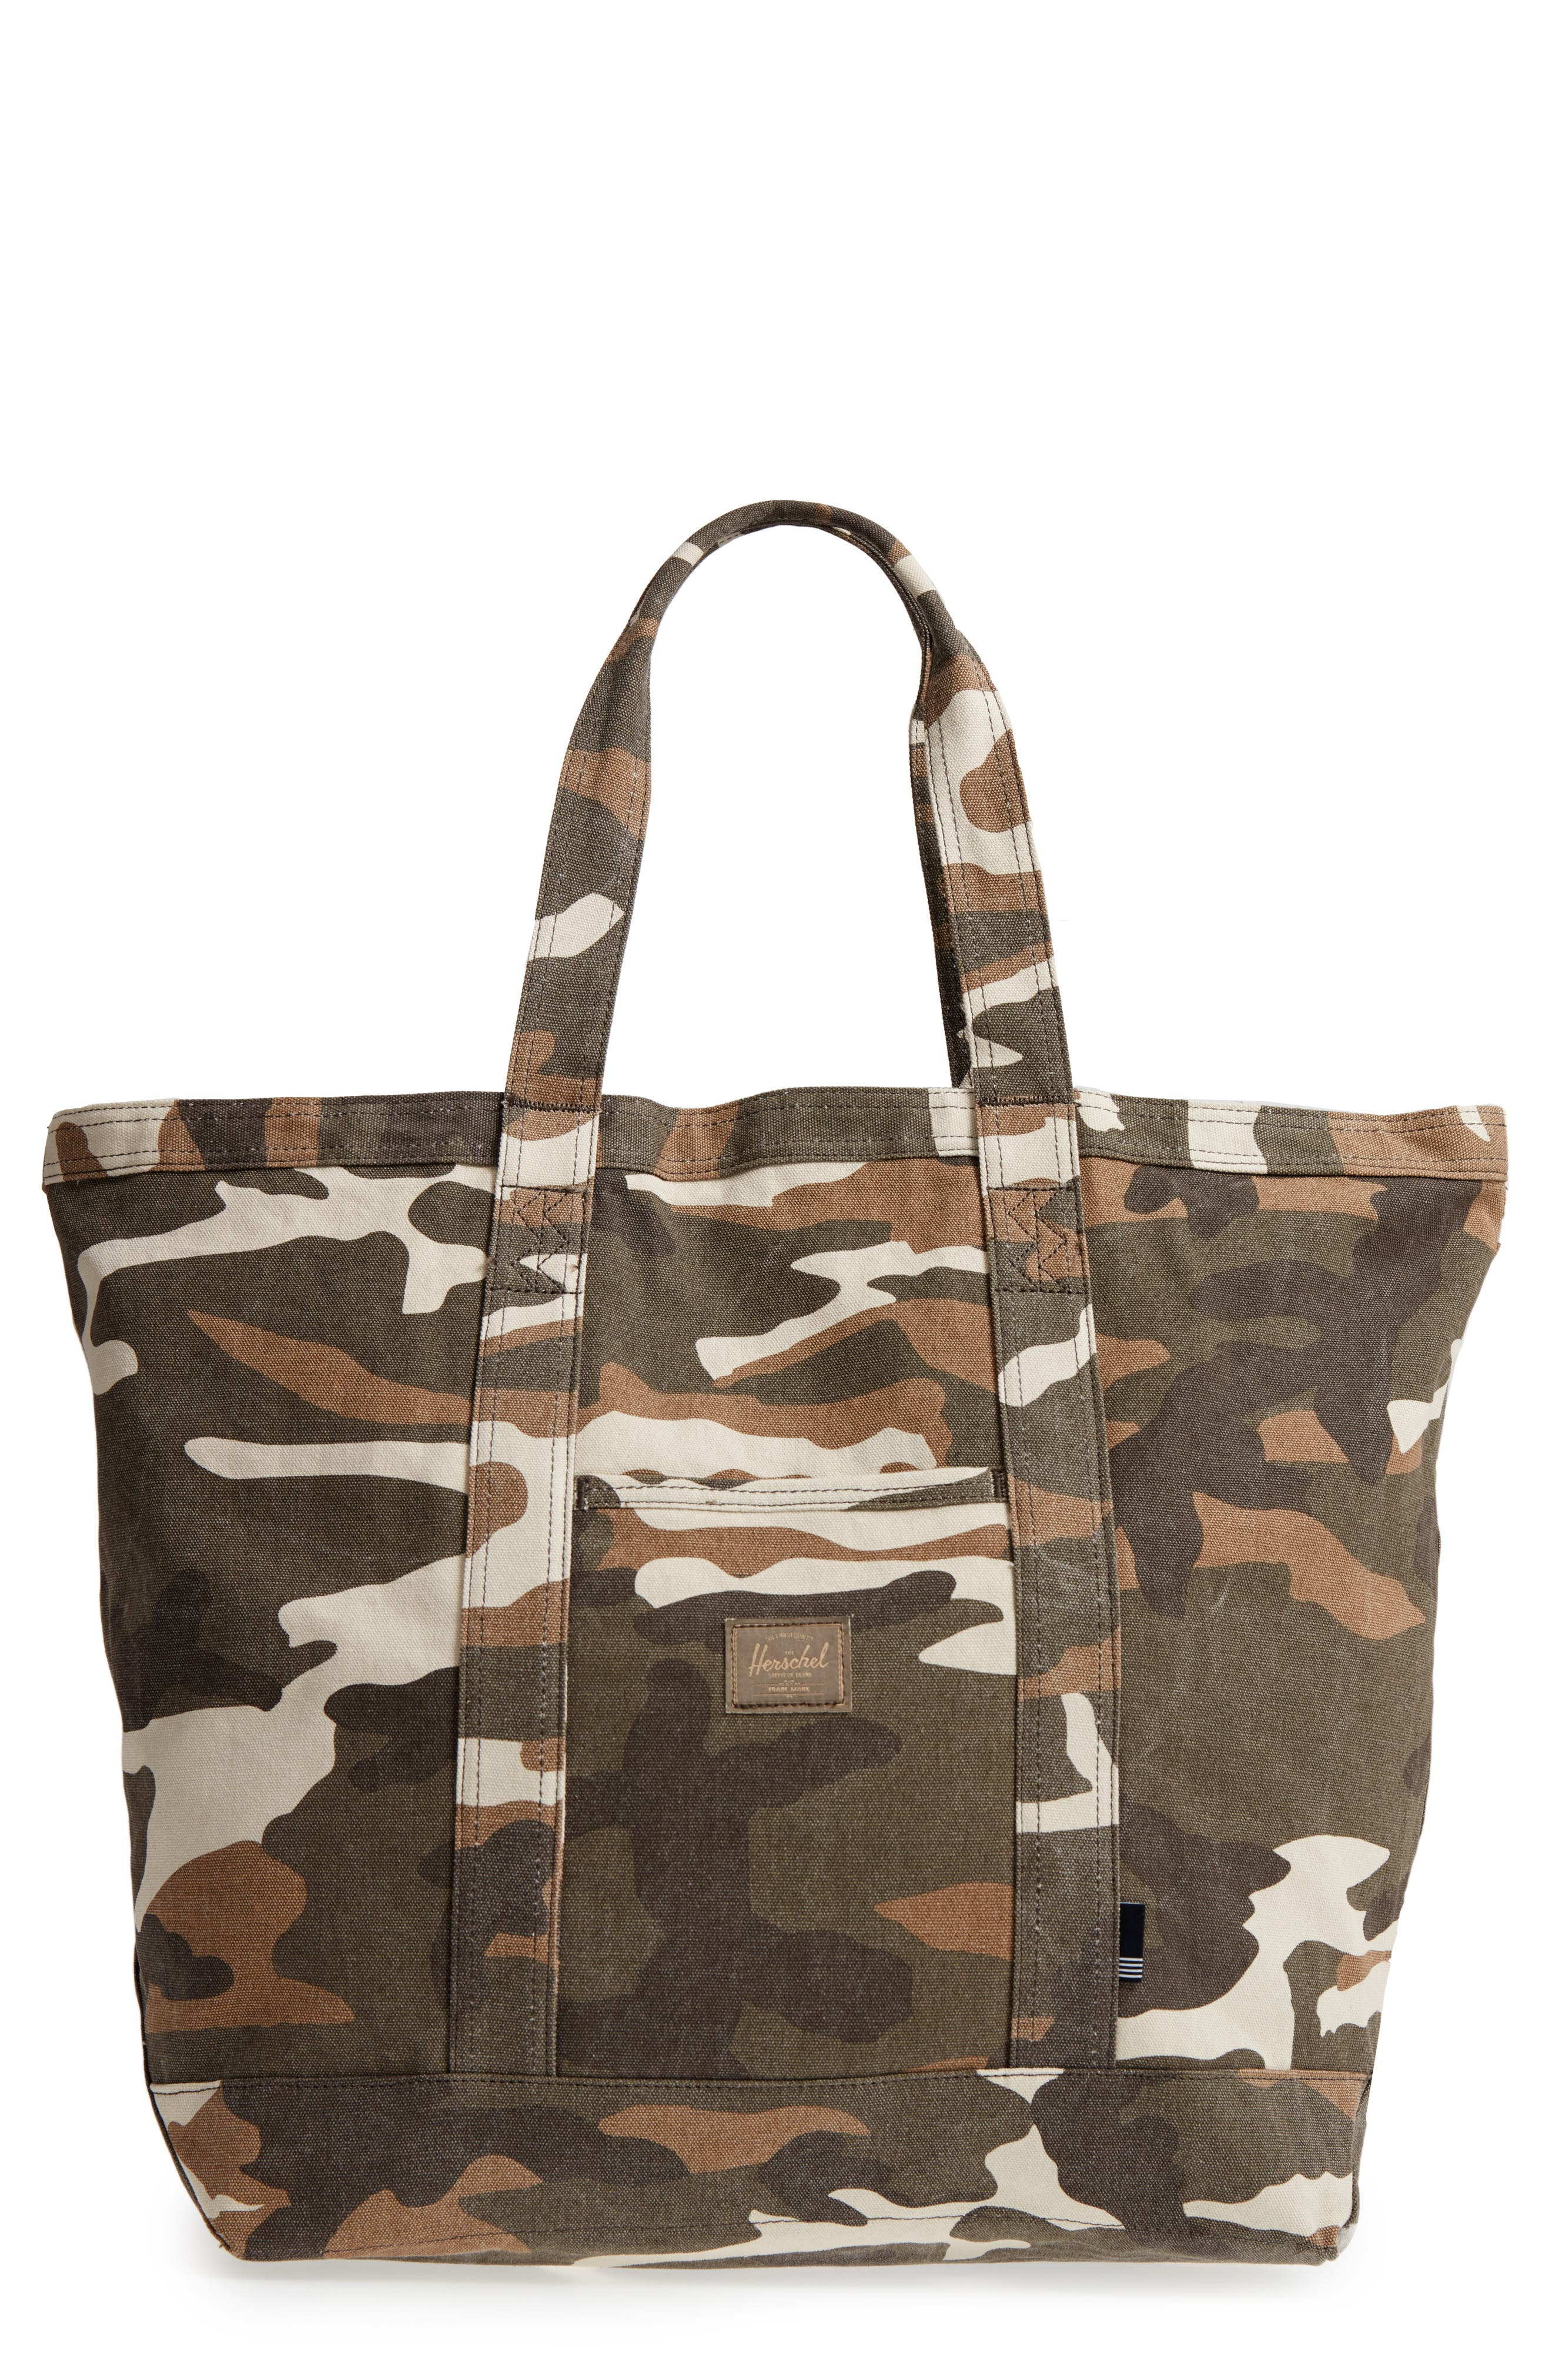 Herschel Supply Co. Bamfield Cotton Canvas Tote